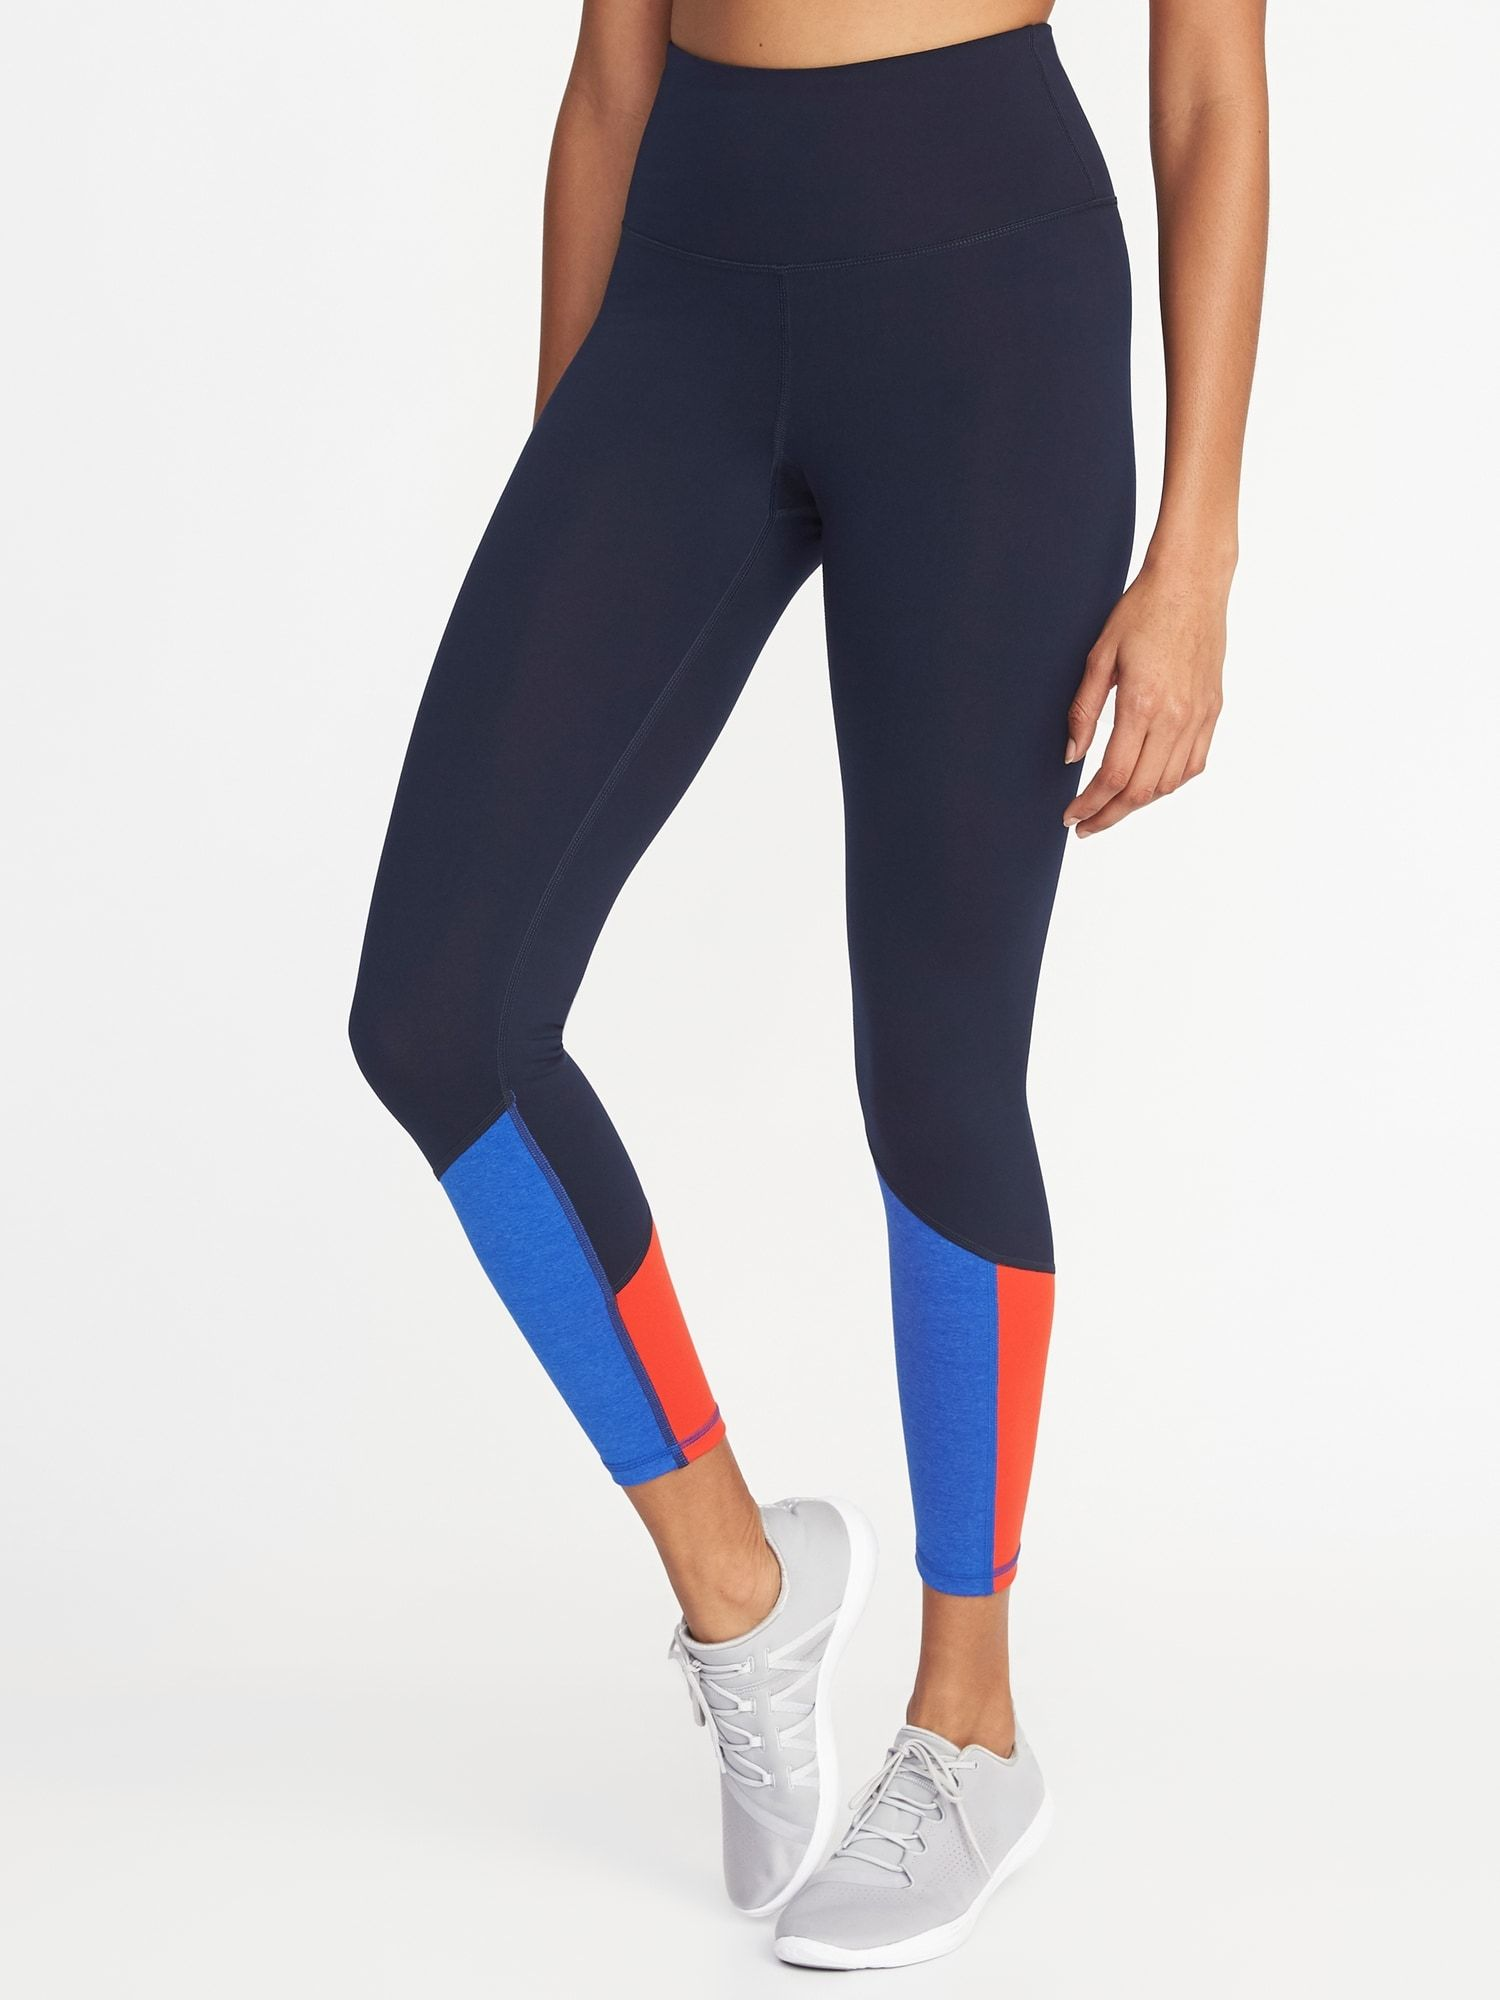 product photo Compression leggings, Pants for women